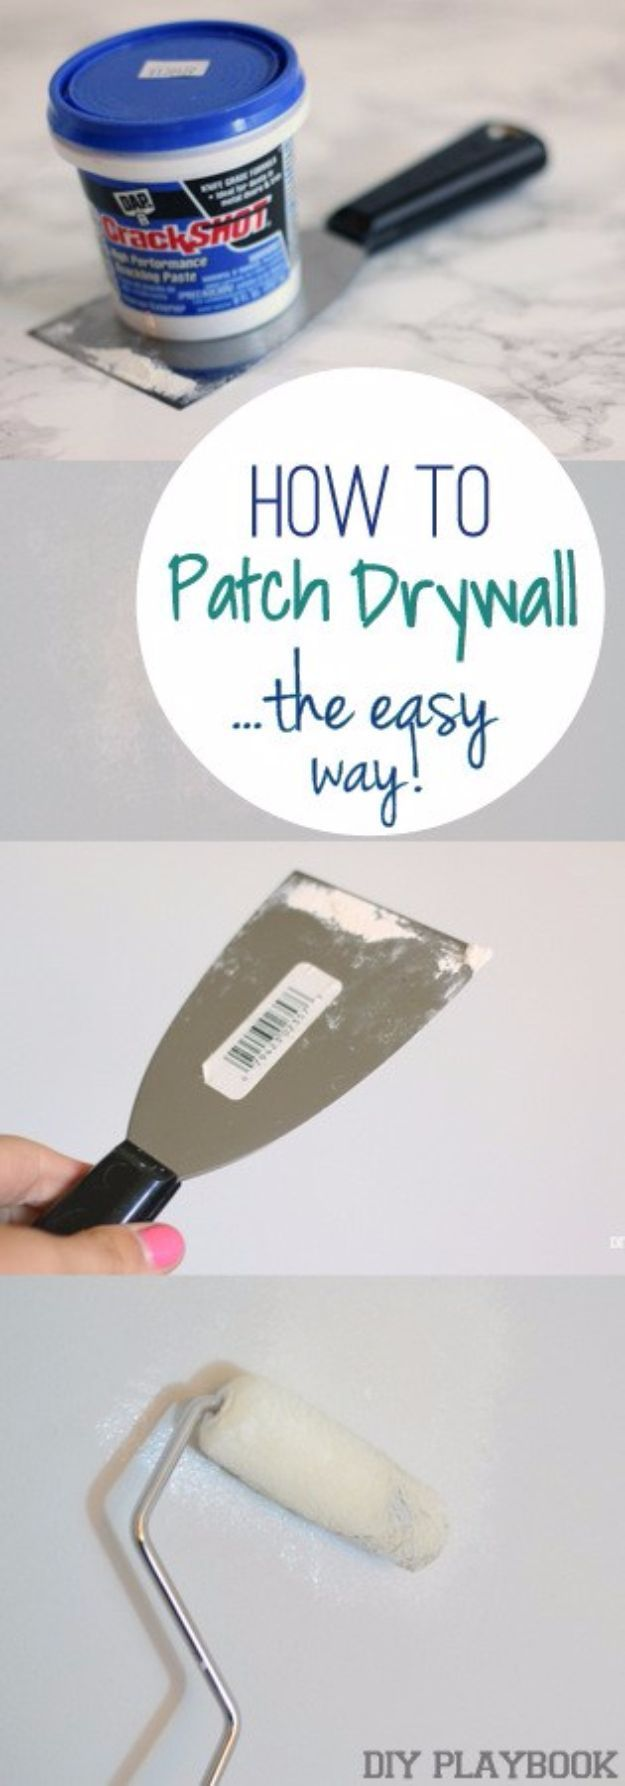 33 Home Repair Secrets From the Pros - Patch Dry Wall The Easy Way - Home Repair Ideas, Home Repairs On A Budget, Home Repair Tips, Living Room, Bedroom, Kitchen Repair, Home Improvement, Quick And Easy Home Tips http://diyjoy.com/diy-home-repair-secrets